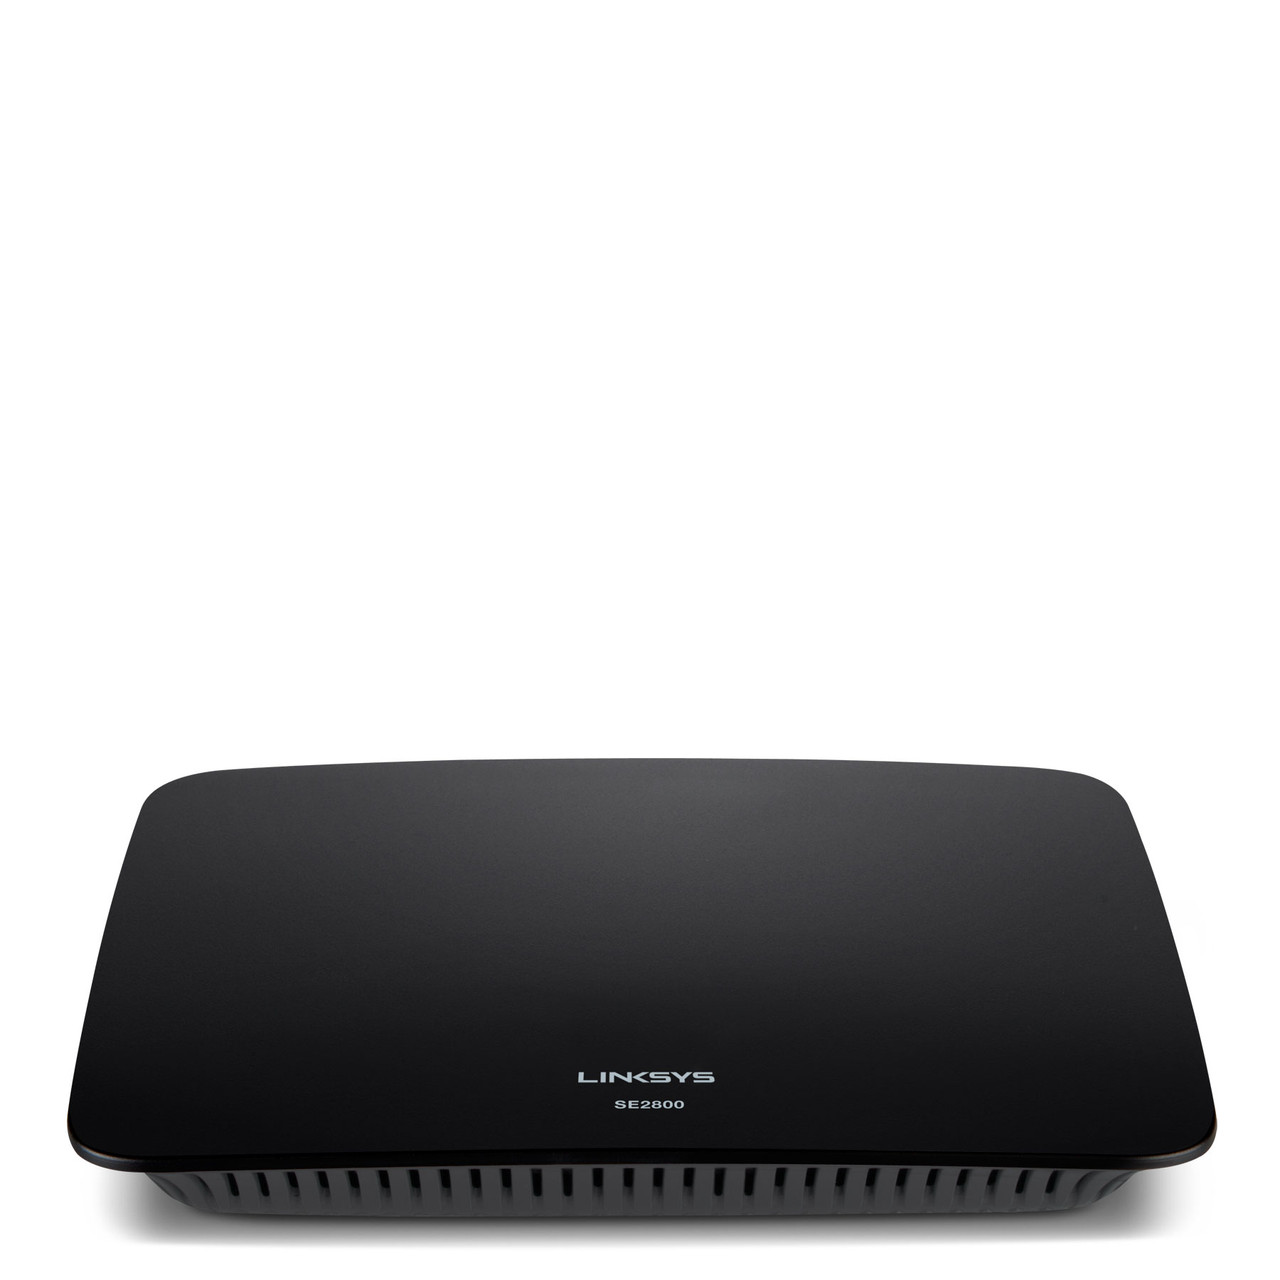 LINKSYS SE2800-EU 8-Port Gigabit Ethernet Switch